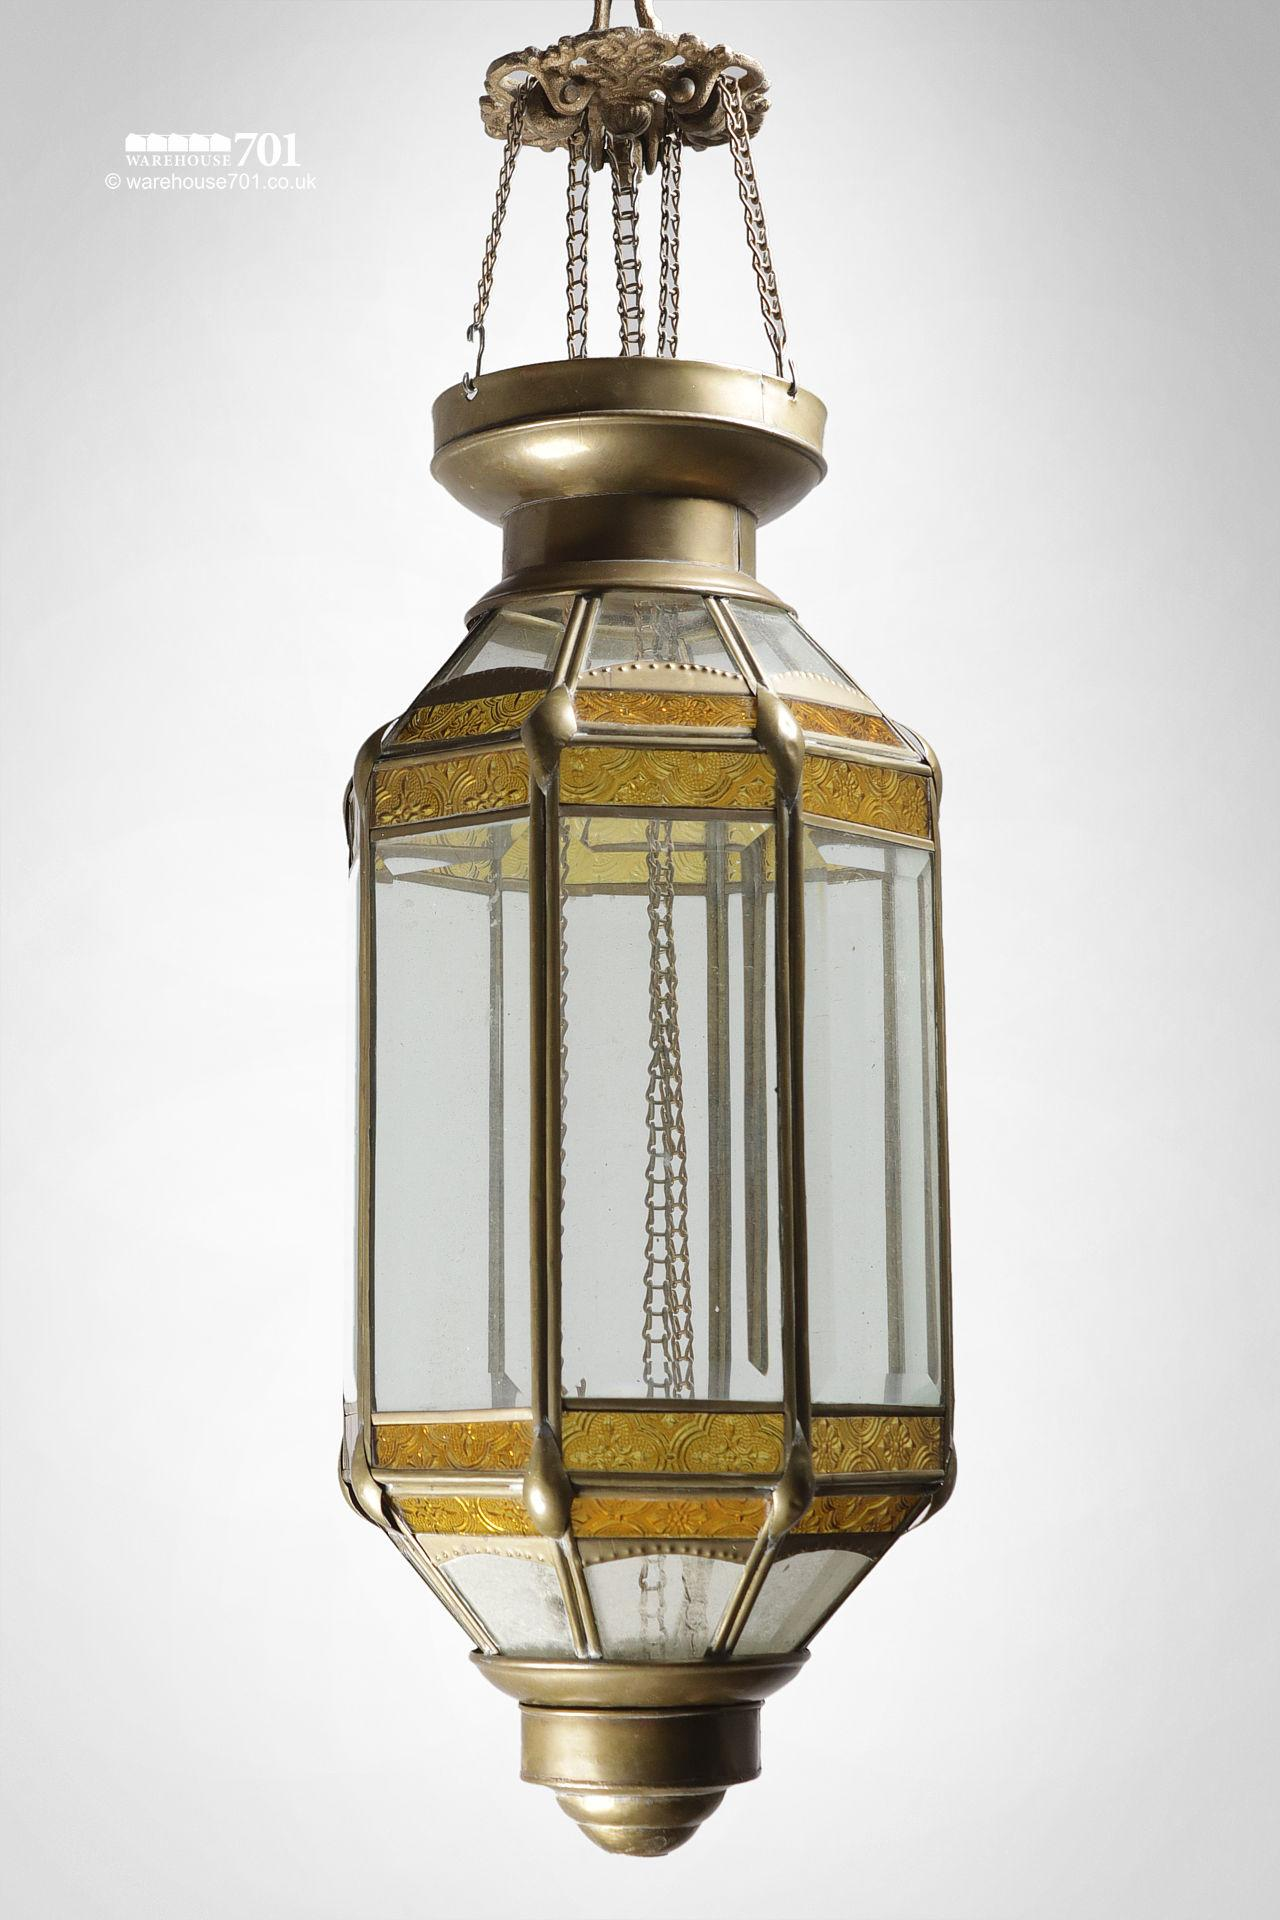 Vintage Octagonal Brass and Glass Candle Lantern